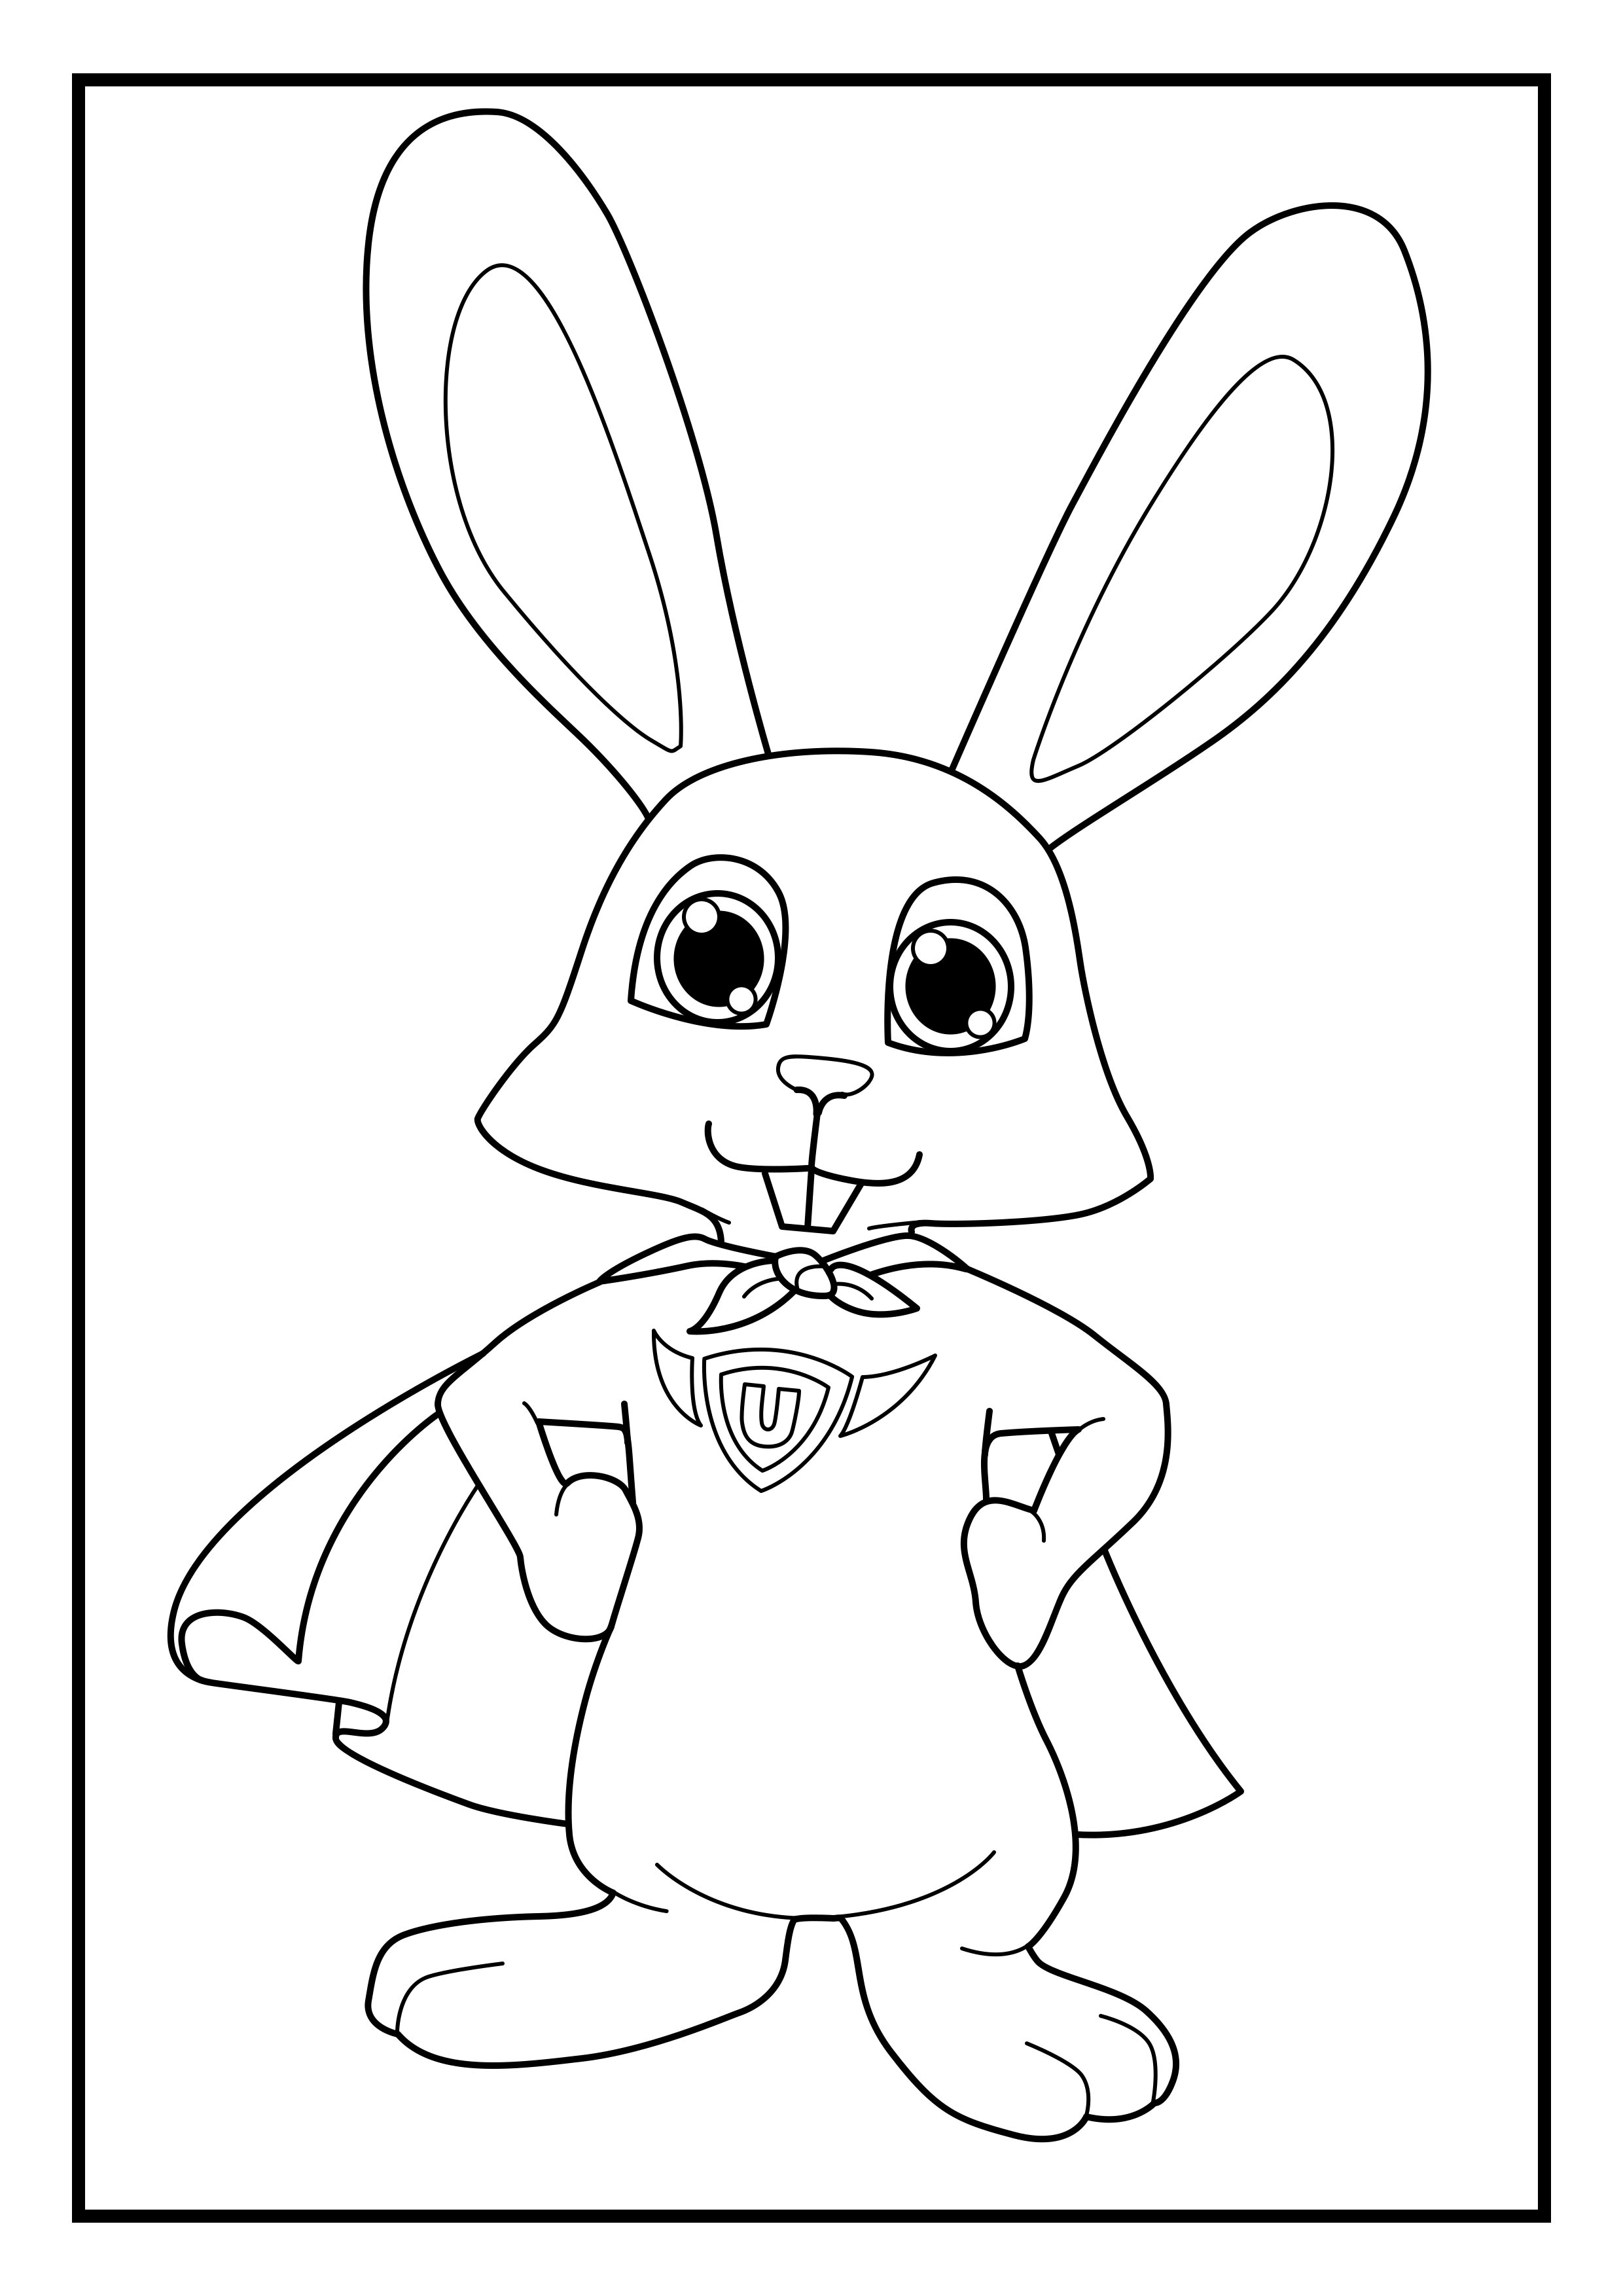 Heather And Groupies Over The Hedge Coloring Pages : Bulk Color | 3508x2480